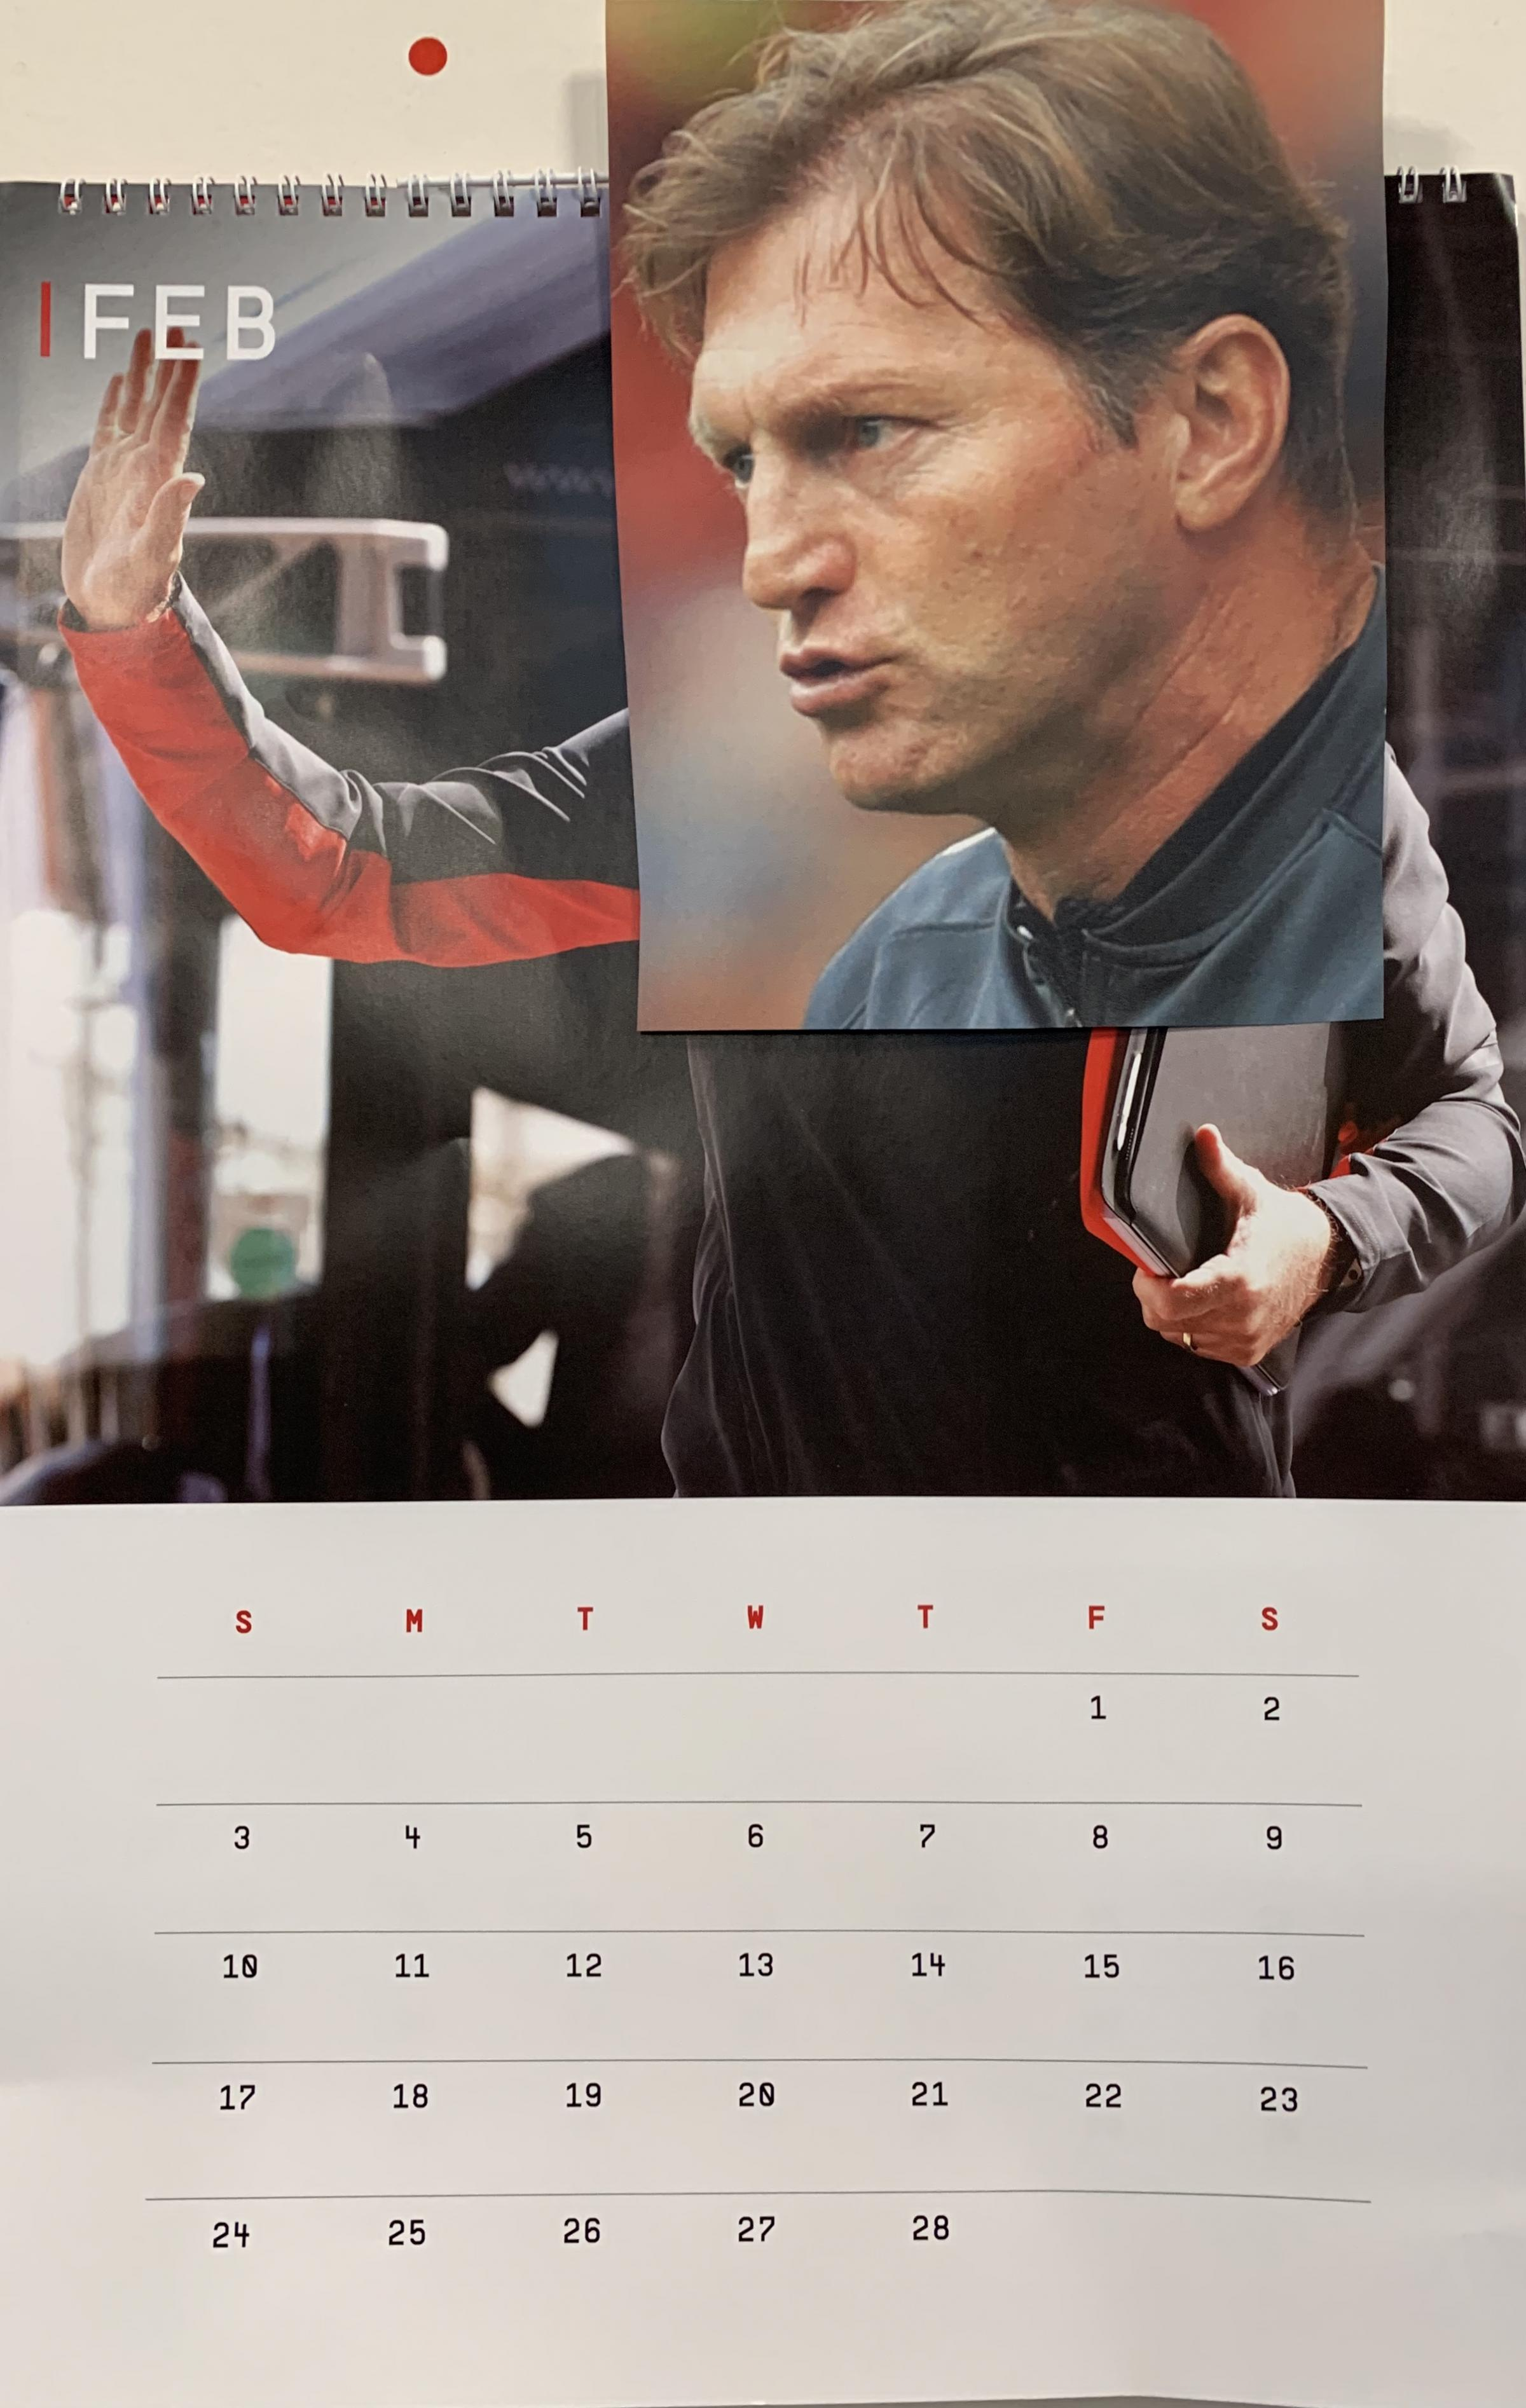 Saints fans poke fun at calendar